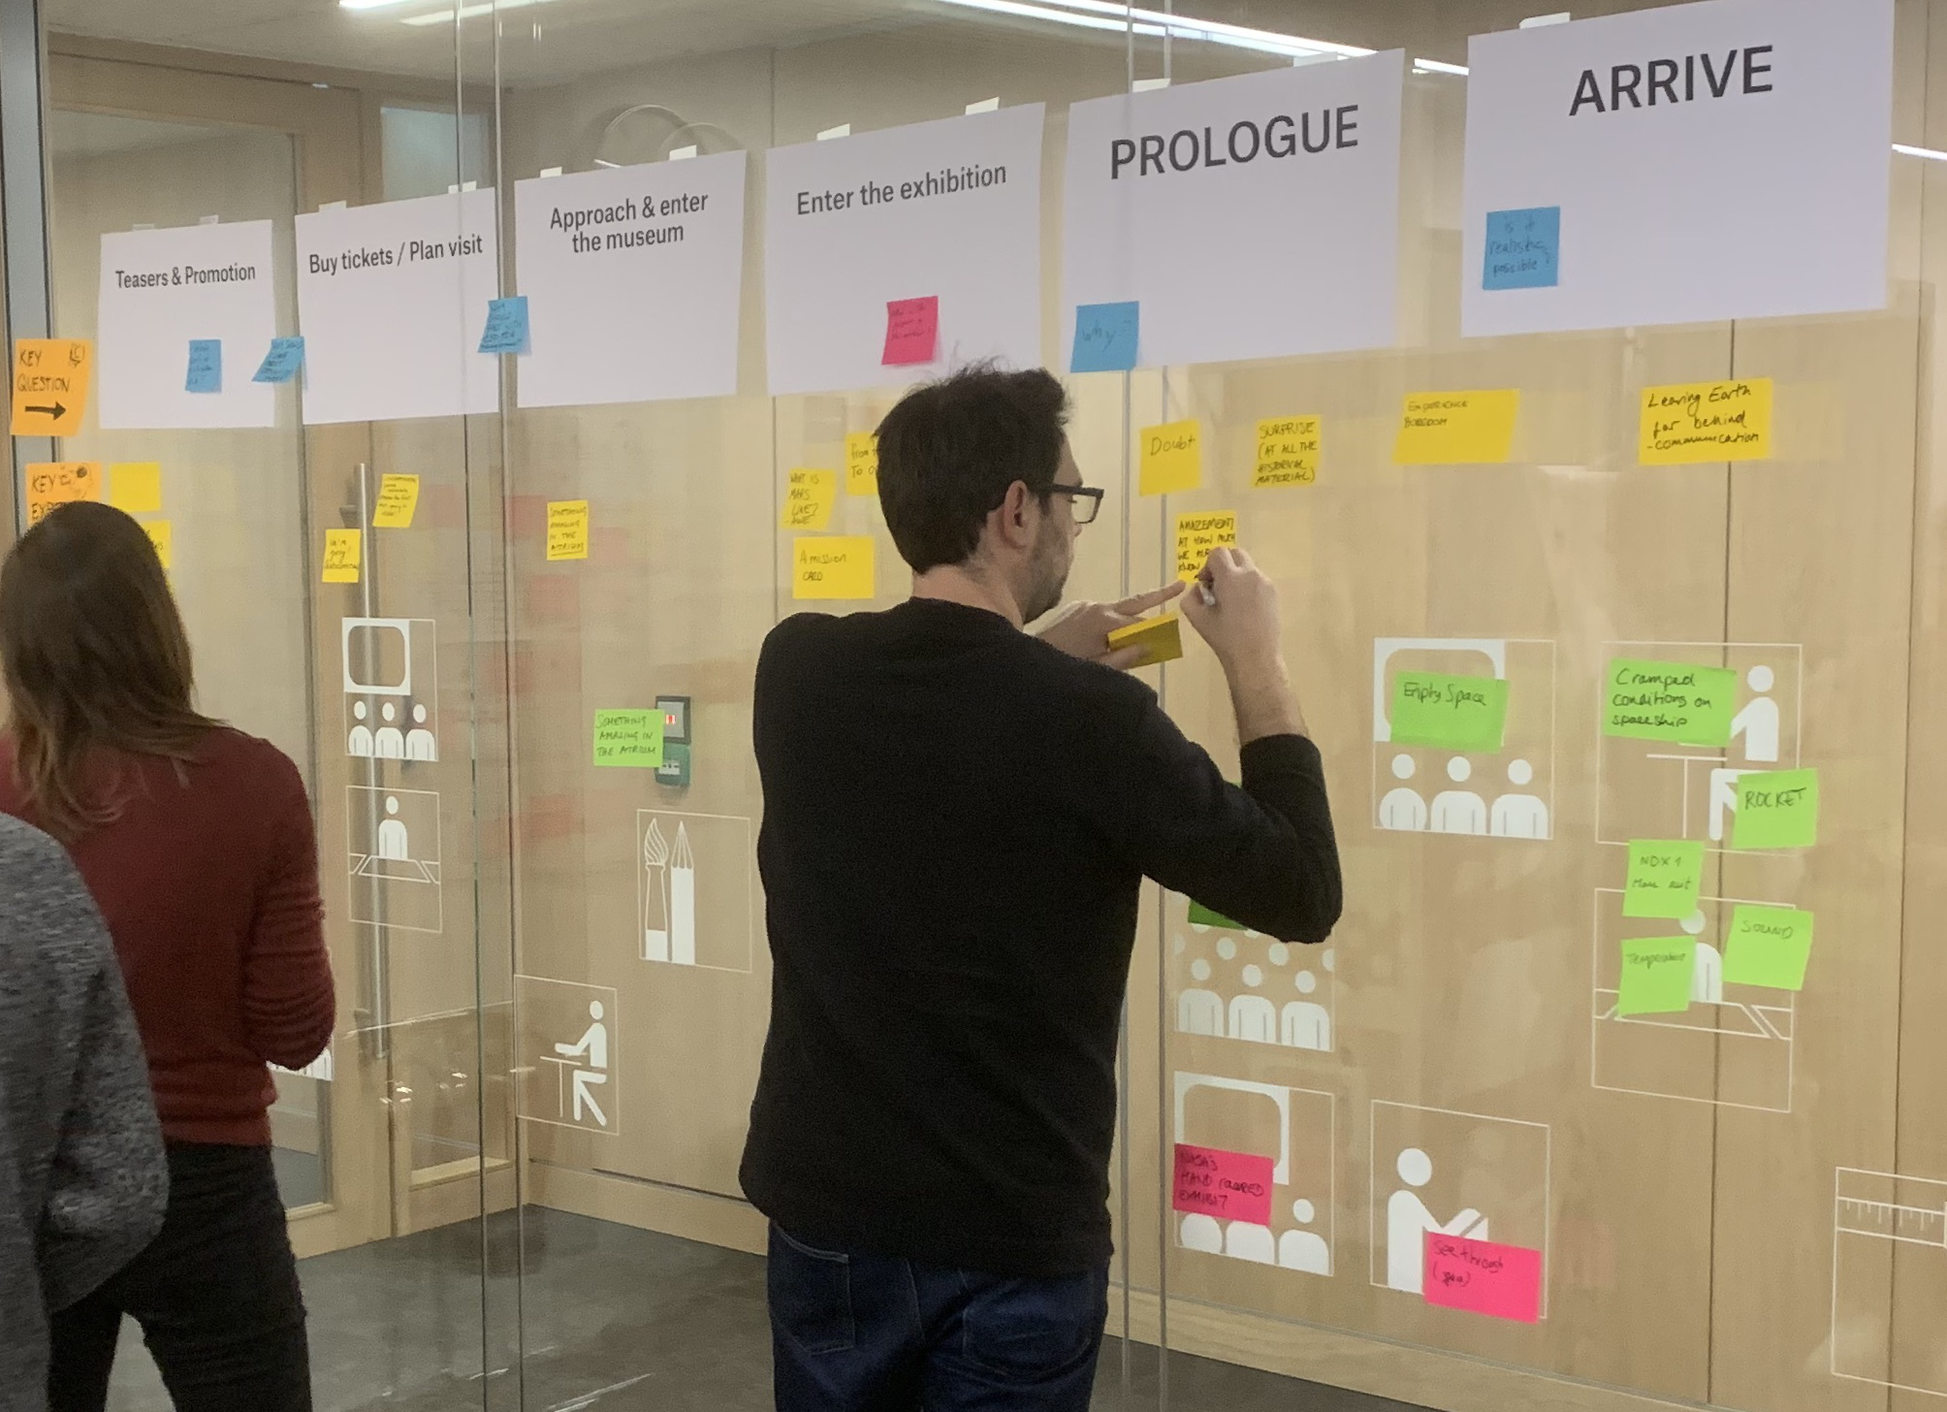 Journey mapping Mars expeditie